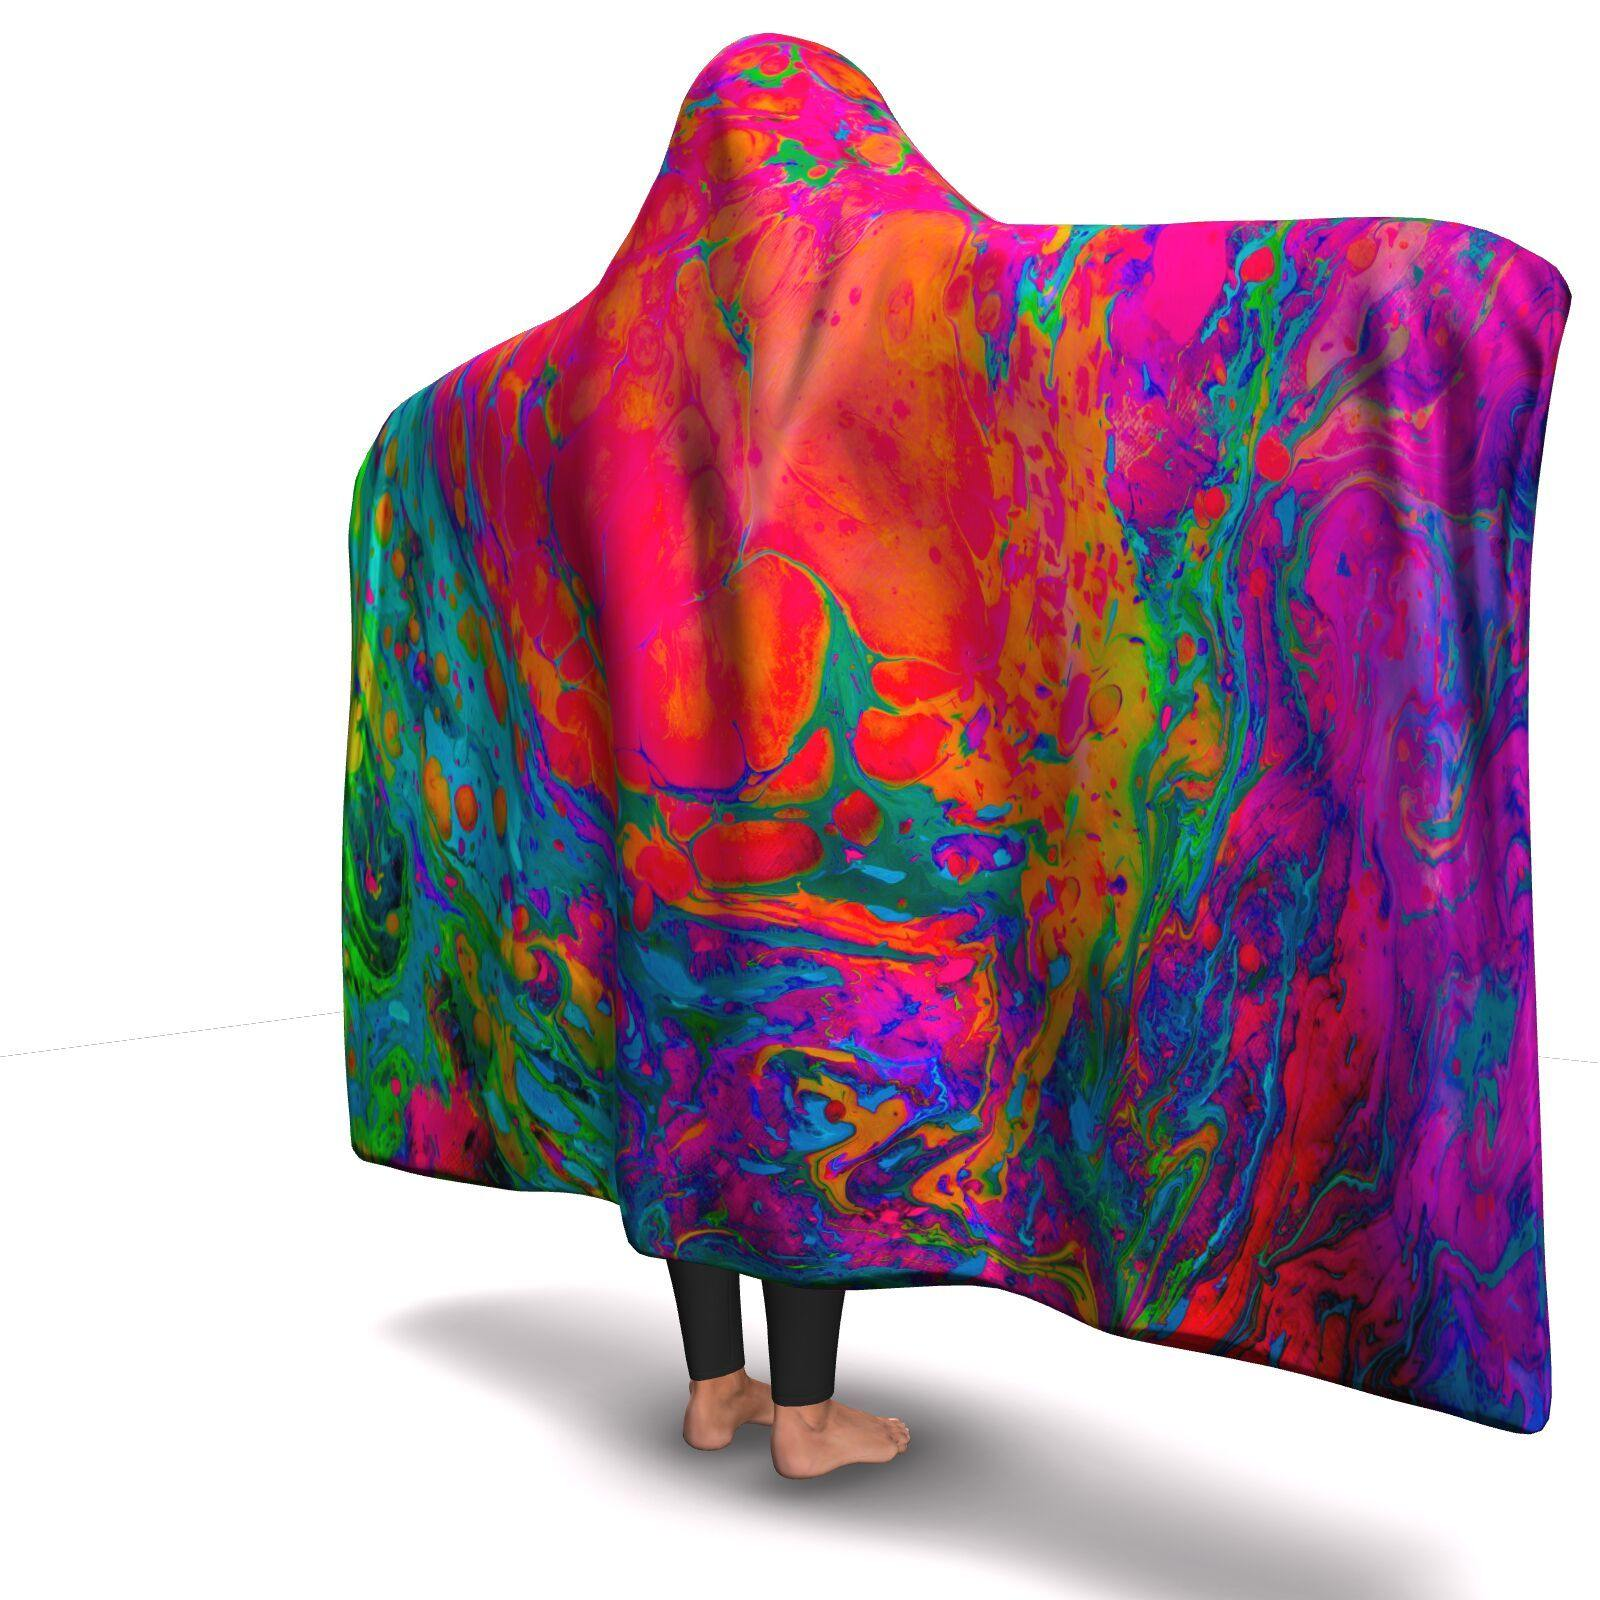 ACID WASH PREMIUM HOODED BLANKET with WRIST STRAPS - Manifestie